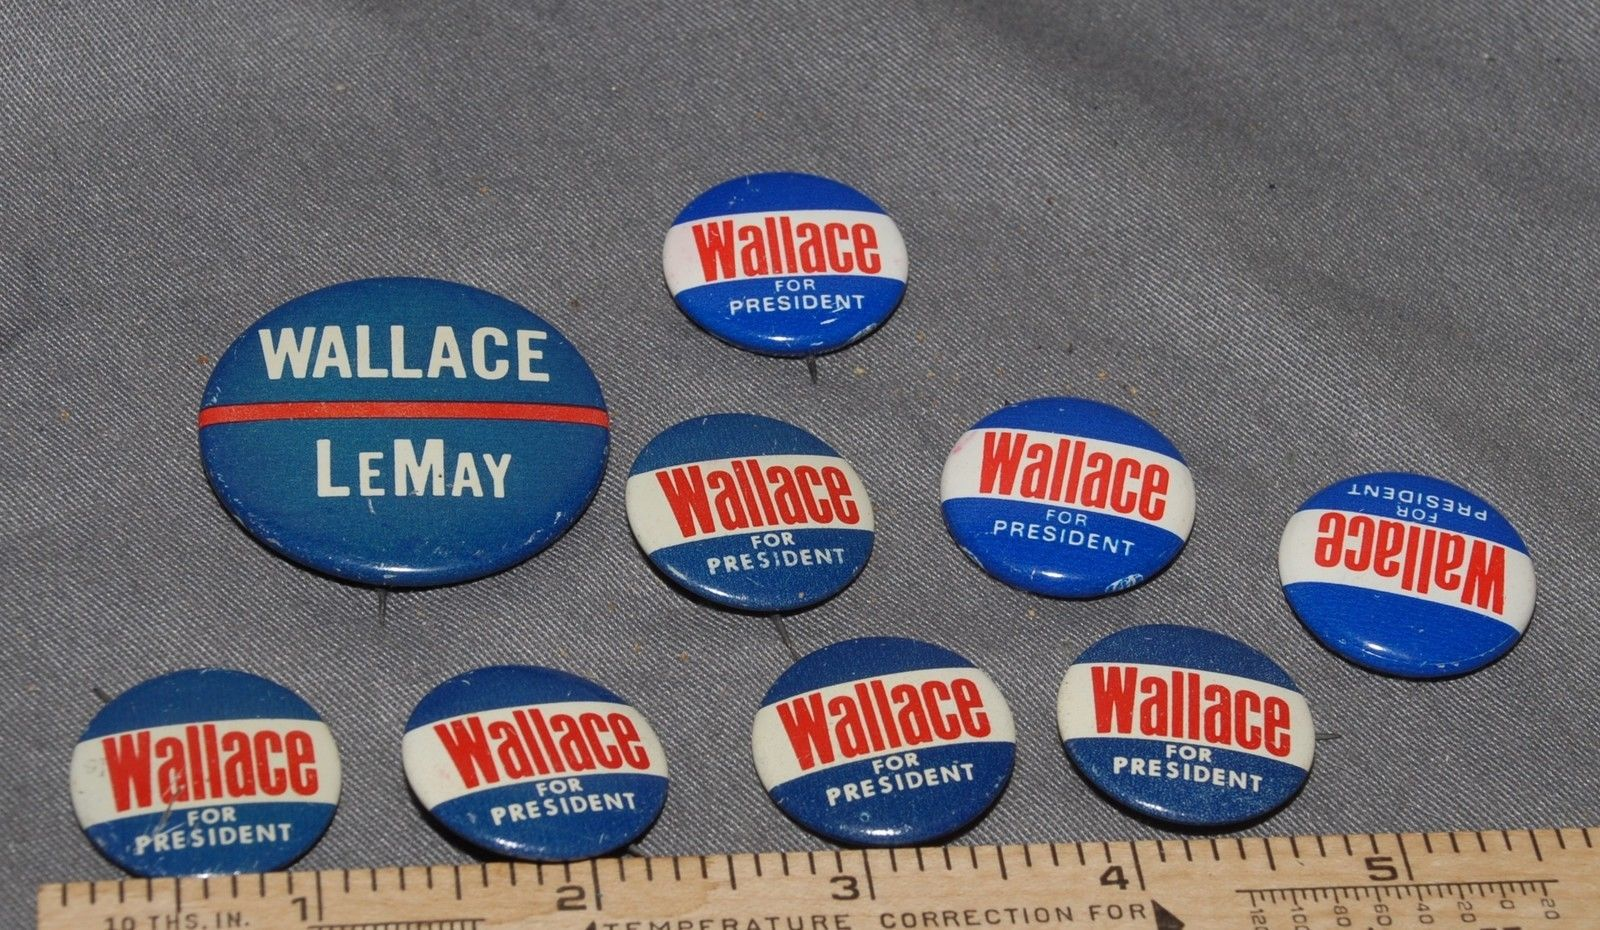 NINE (9) GEORGE WALLACE & CURTIS LEMAY PRESIDENTAL CANDIDATE BUTTONS